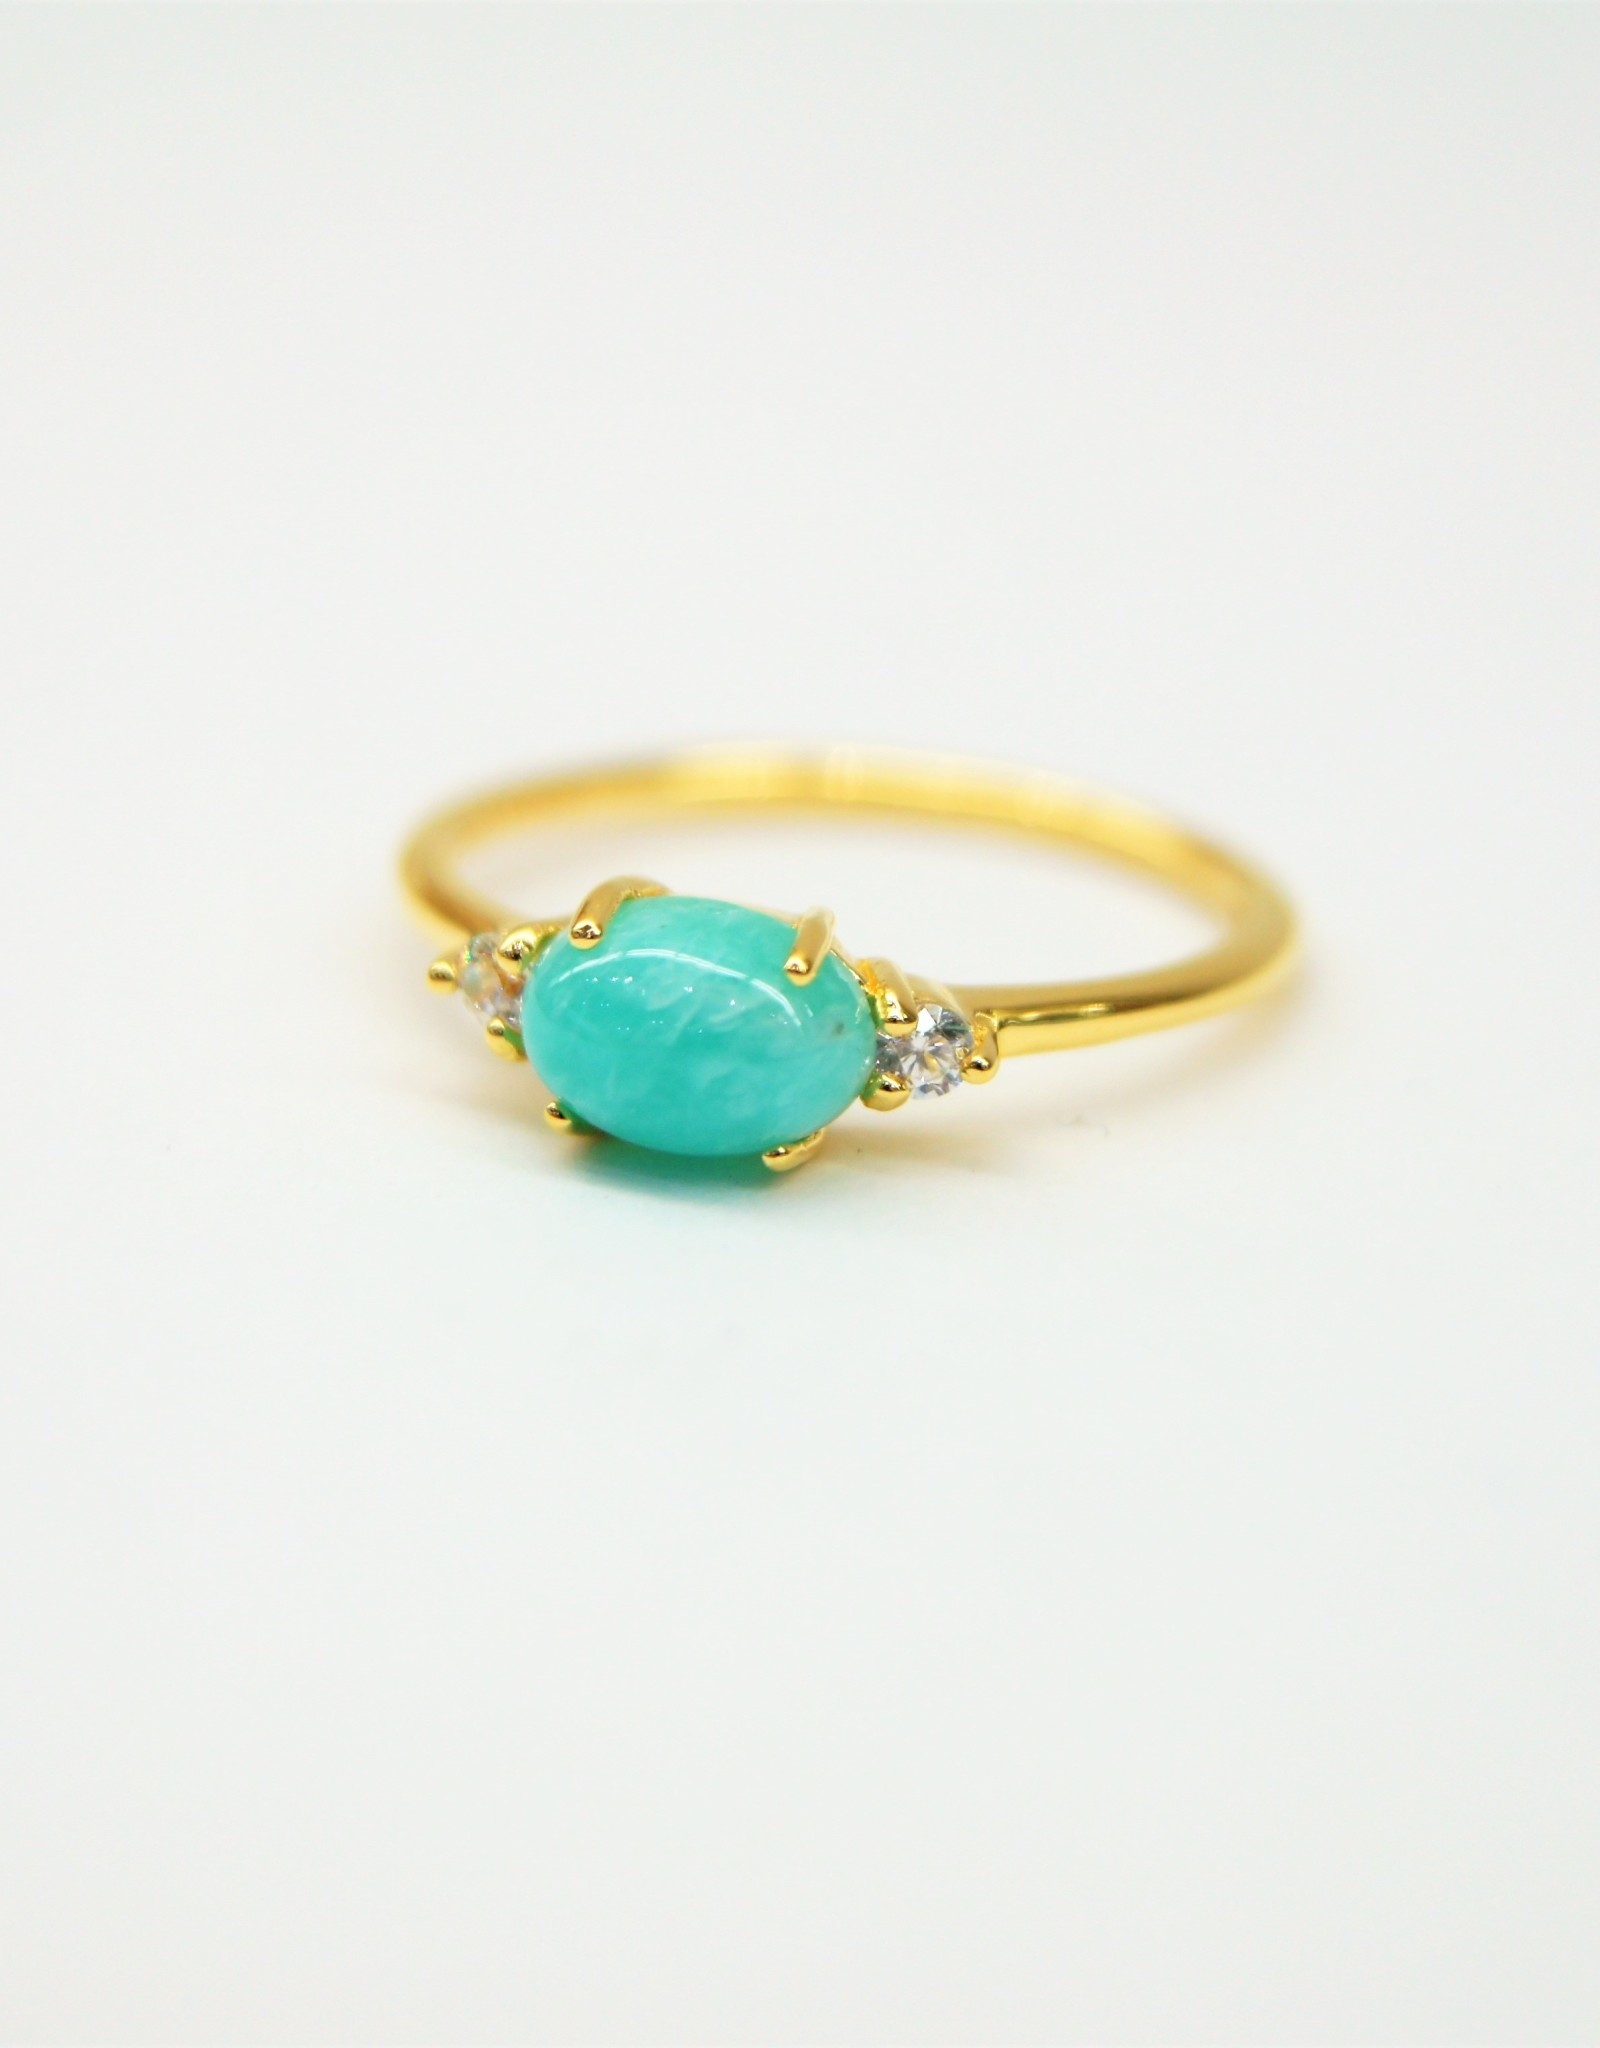 Tashi Oval Amazonite with Cubic Zirconia Ring - Gold Vermeil